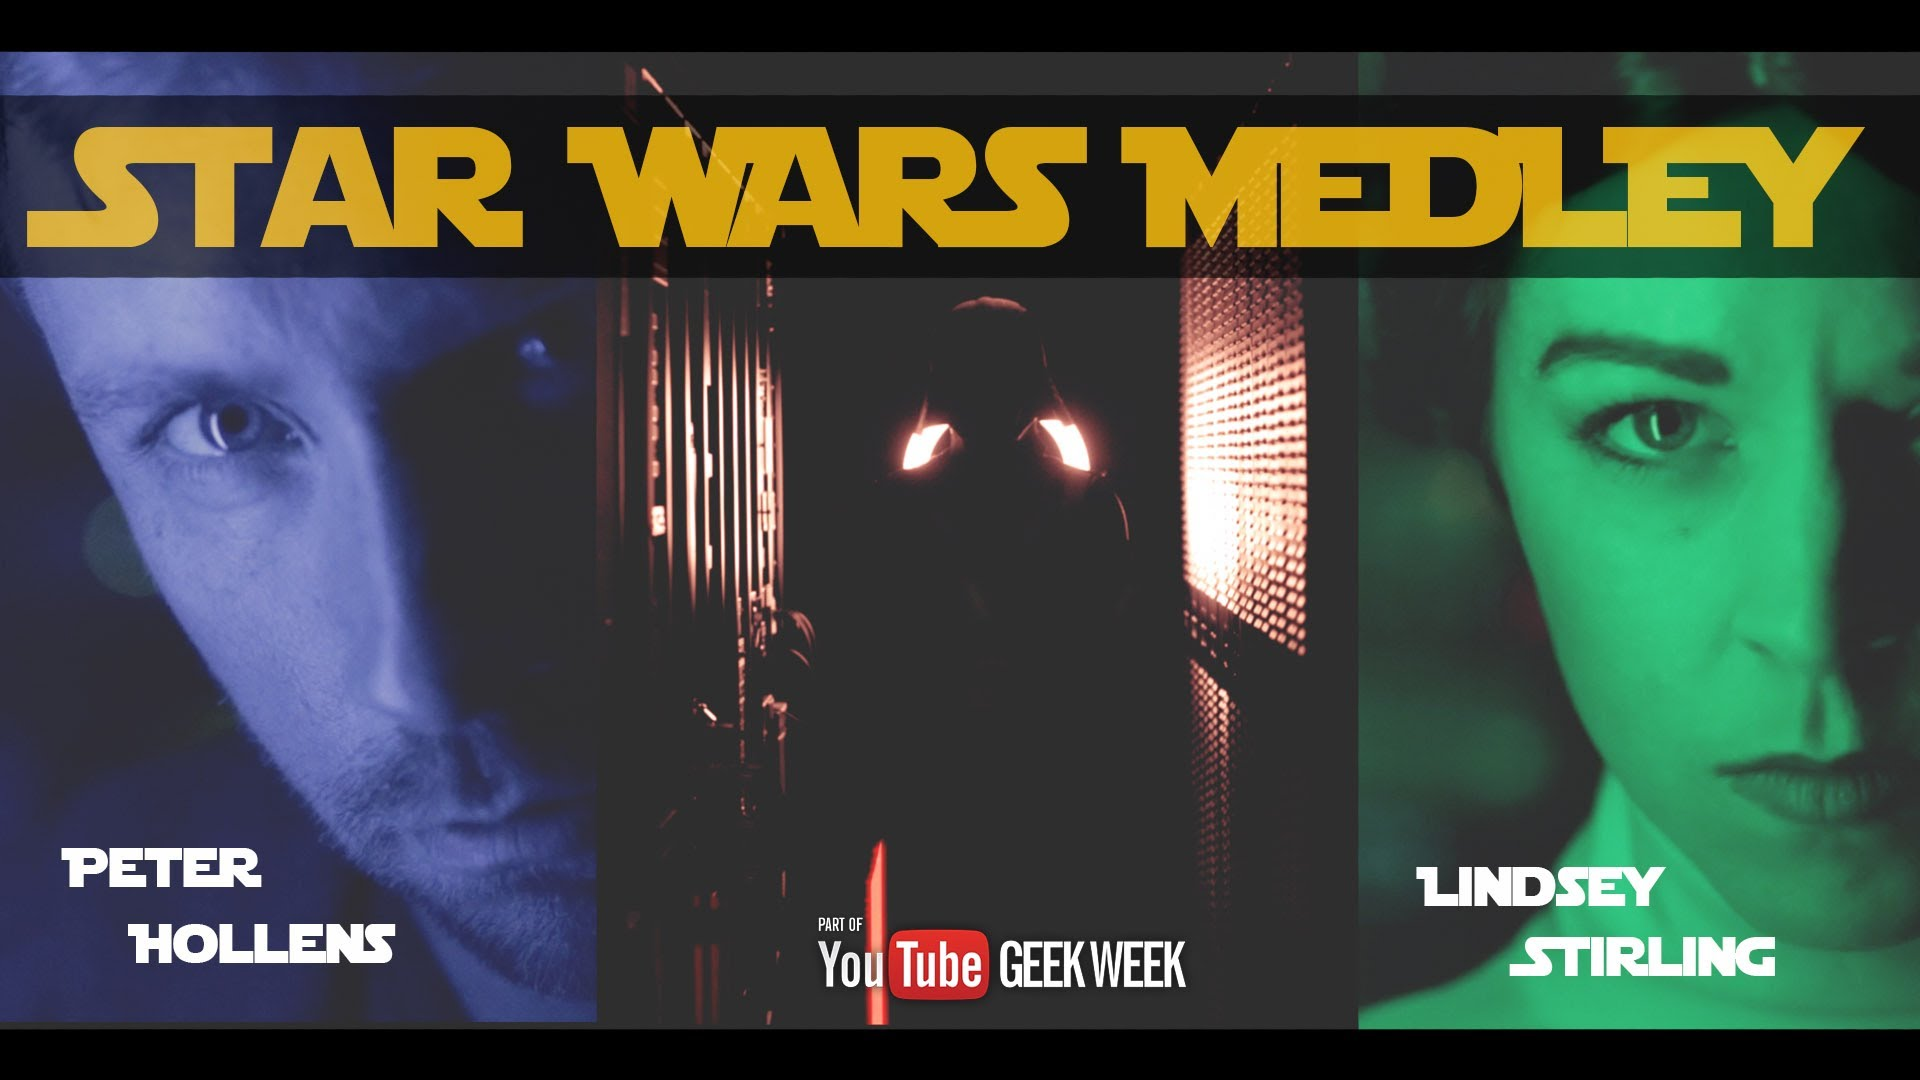 Na endlich! Lindsey Stirling & Peter Hollens: STAR WARS Medley